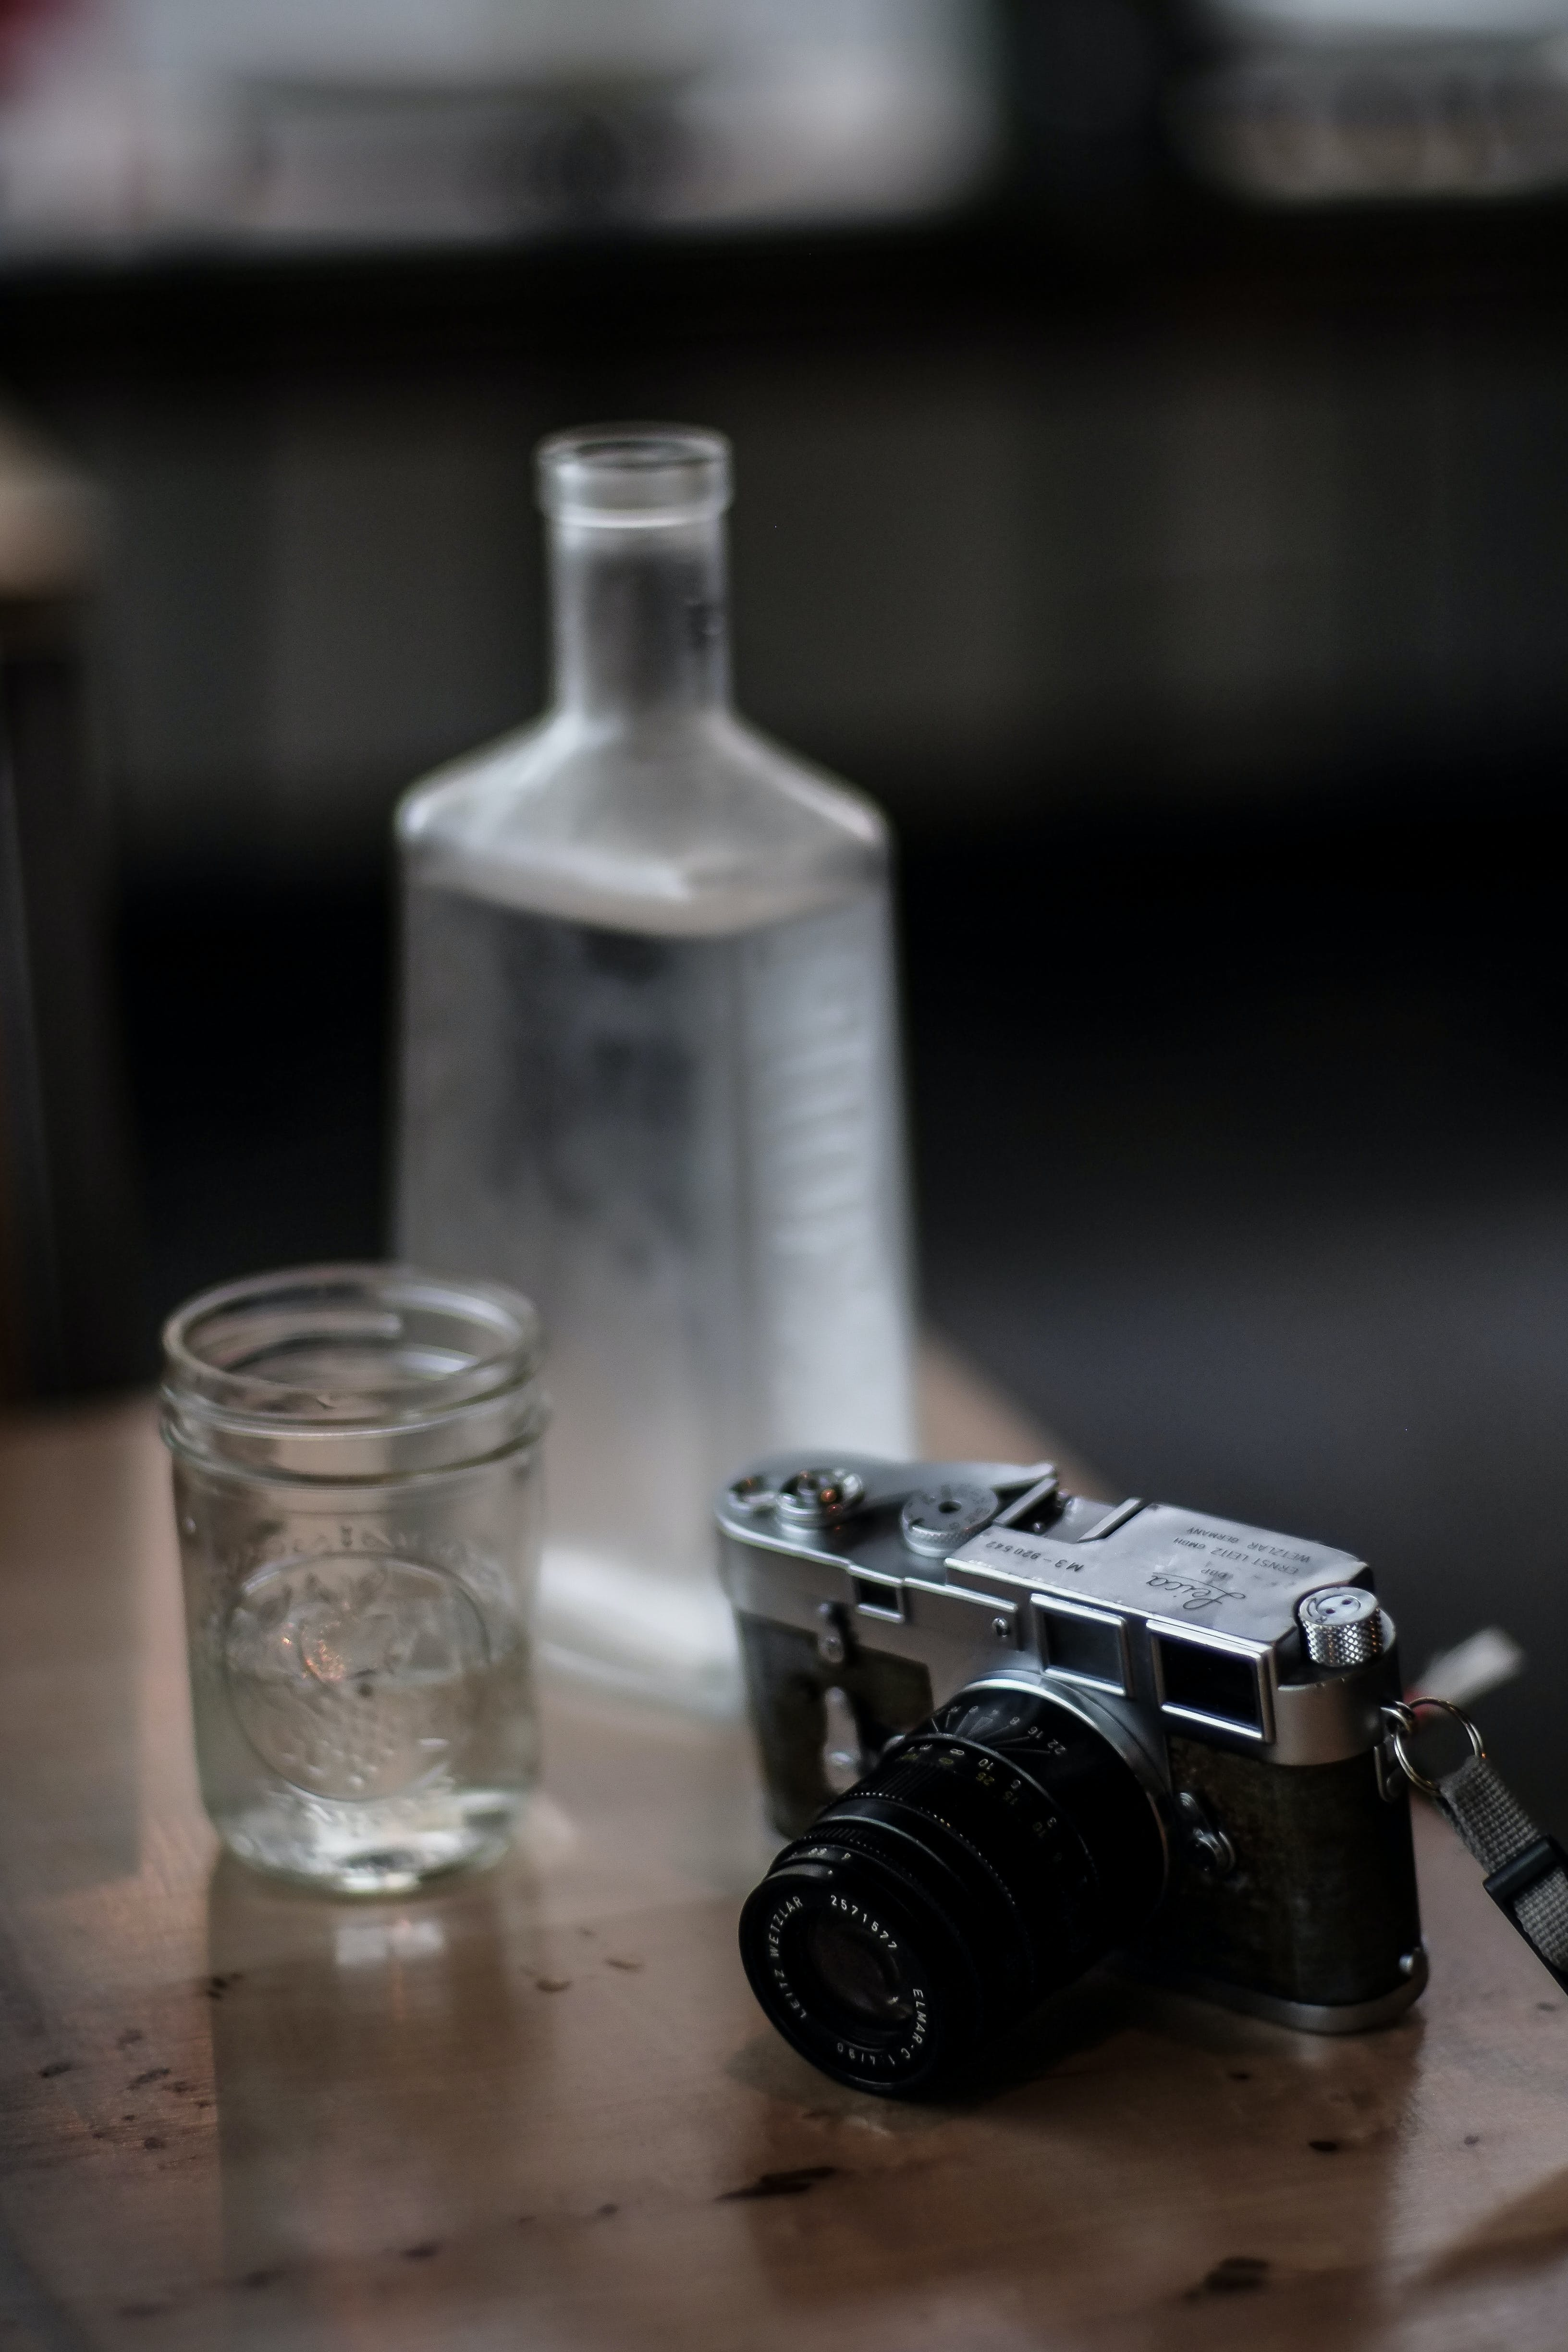 Black and Gray Camera Beside Drinking Glass